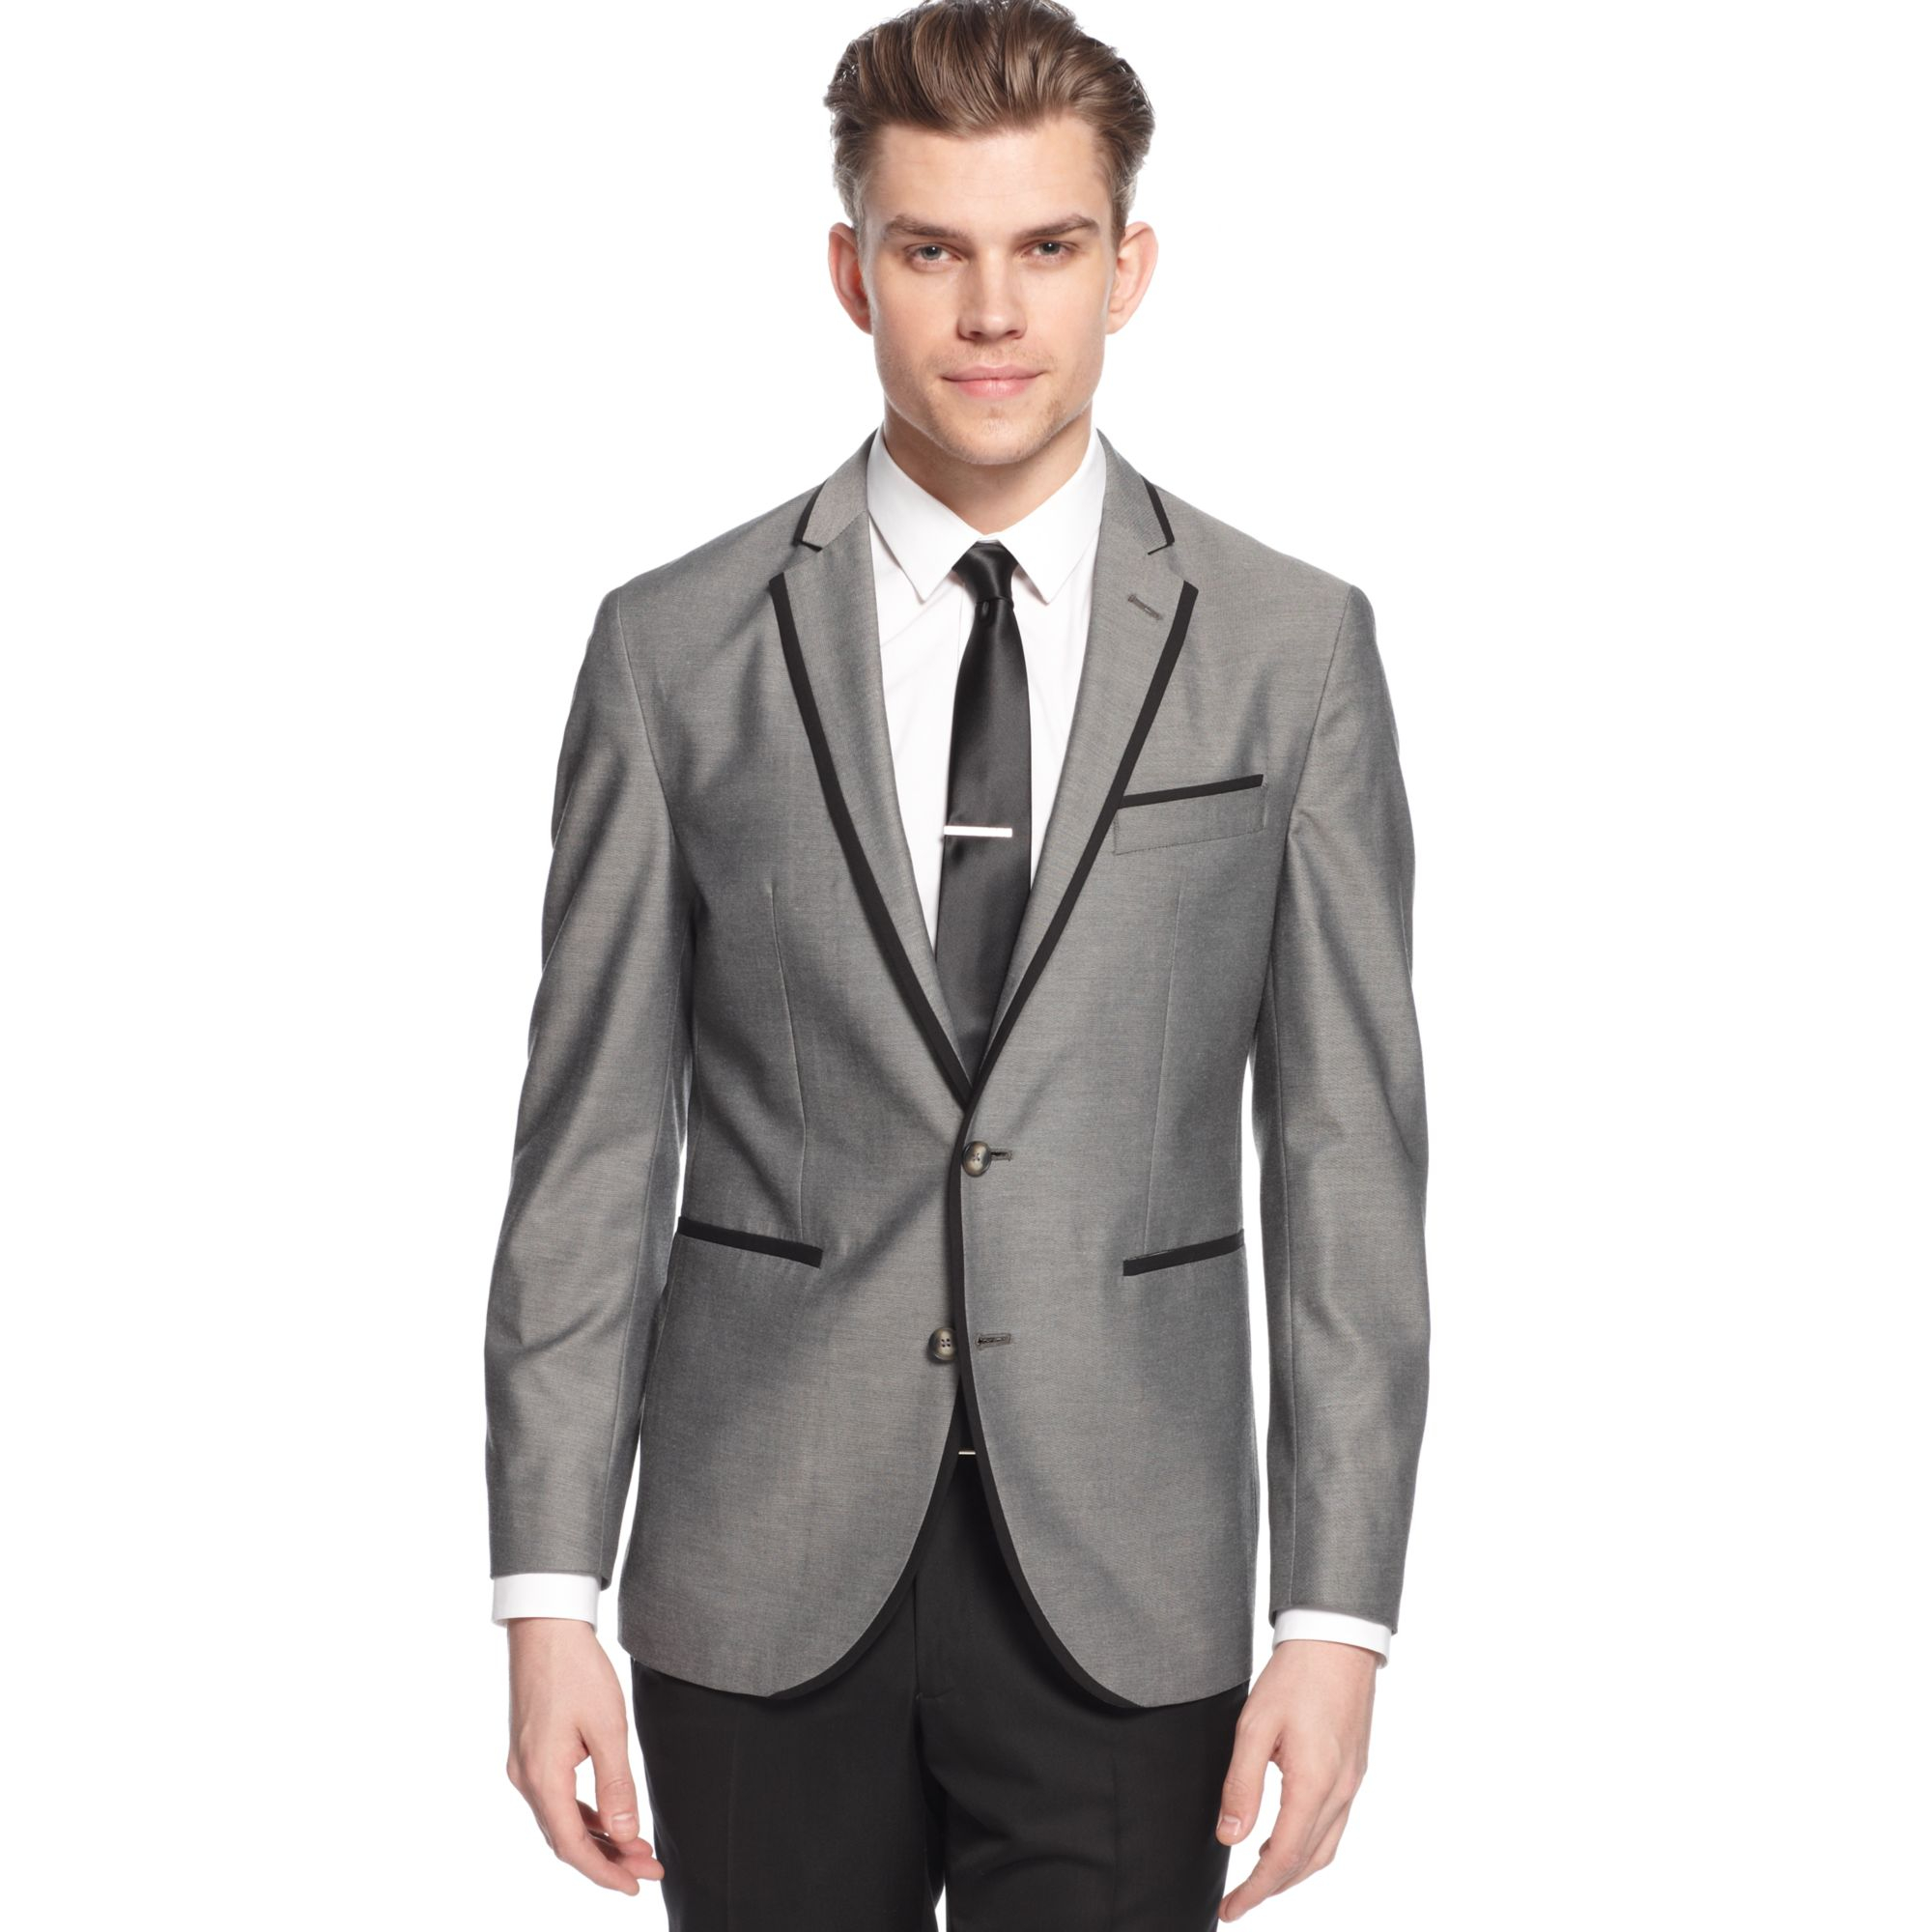 Kenneth cole reaction Sport Coat Grey Solid with Black Lapel and ...